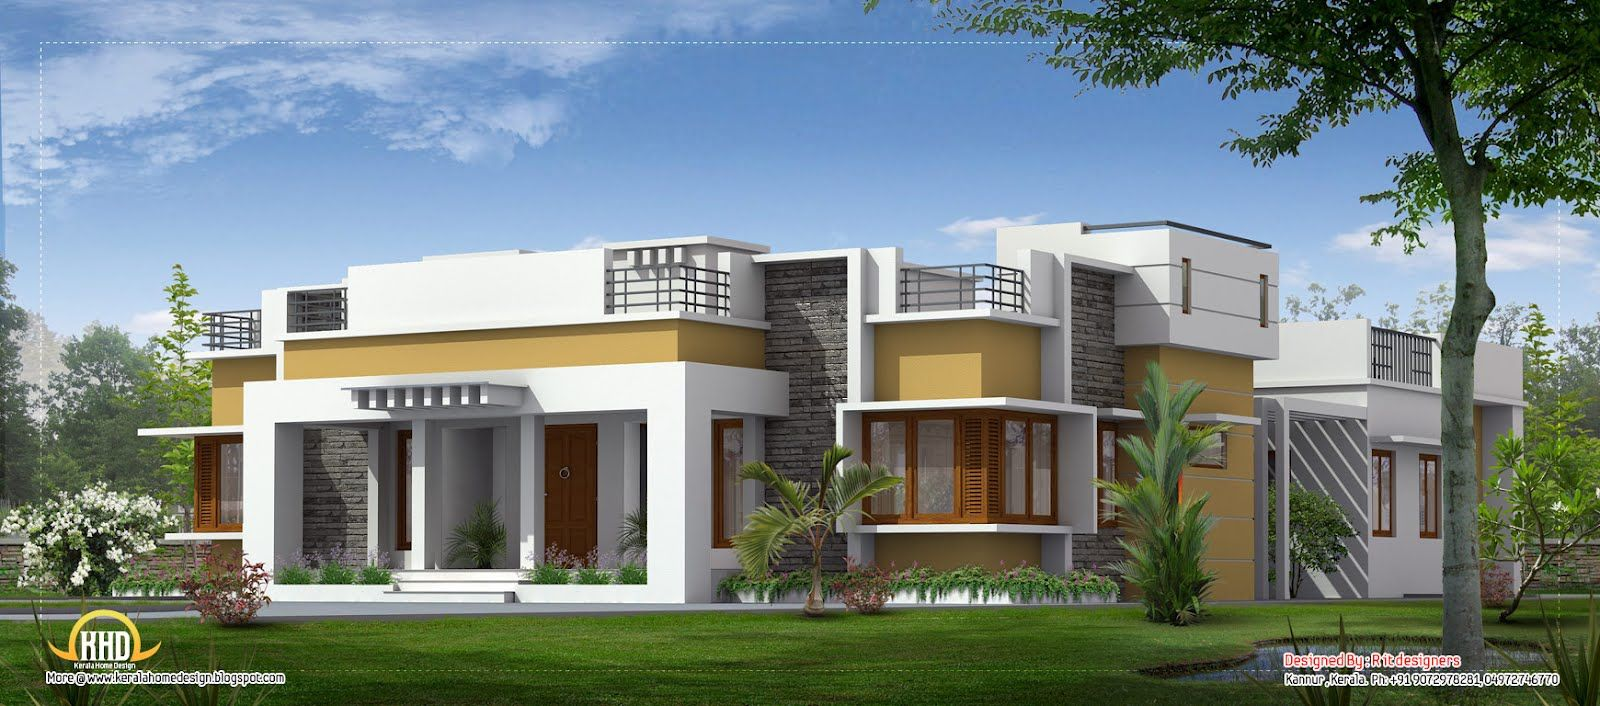 Front Elevation Pergola Design : Beautiful single floor home sq ft design